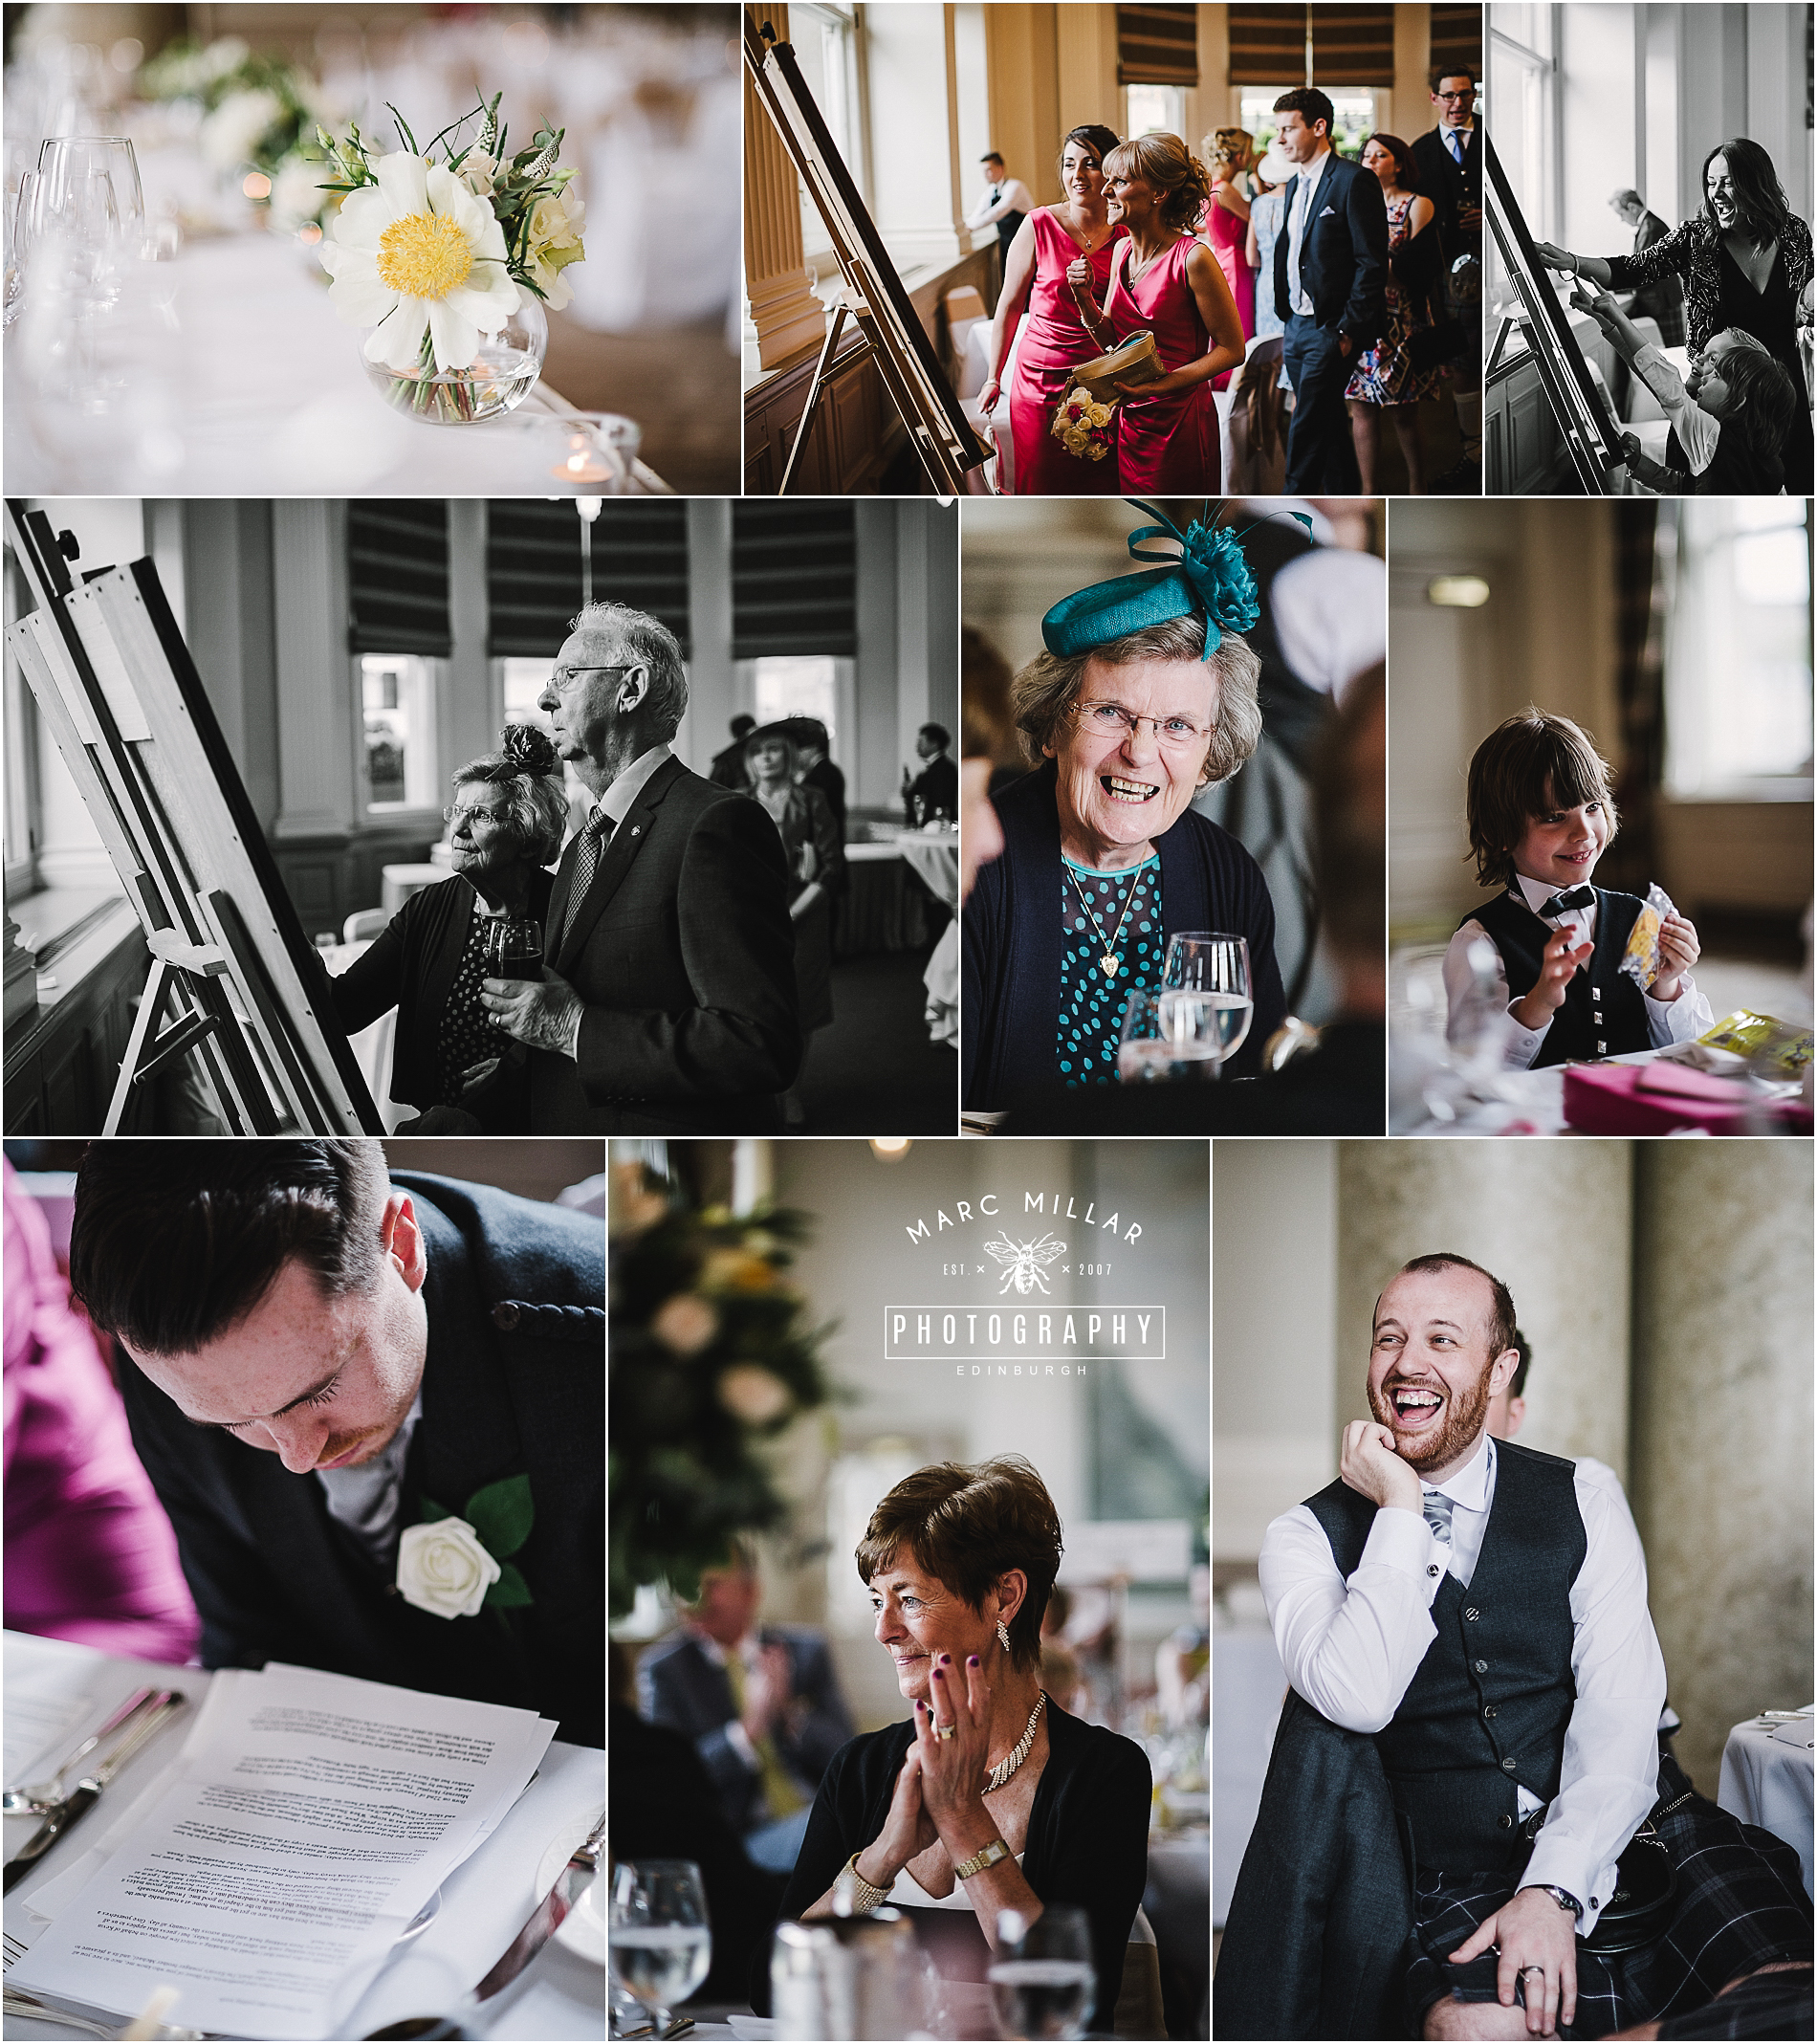 The Balmoral Wedding by Marc Millar Photography